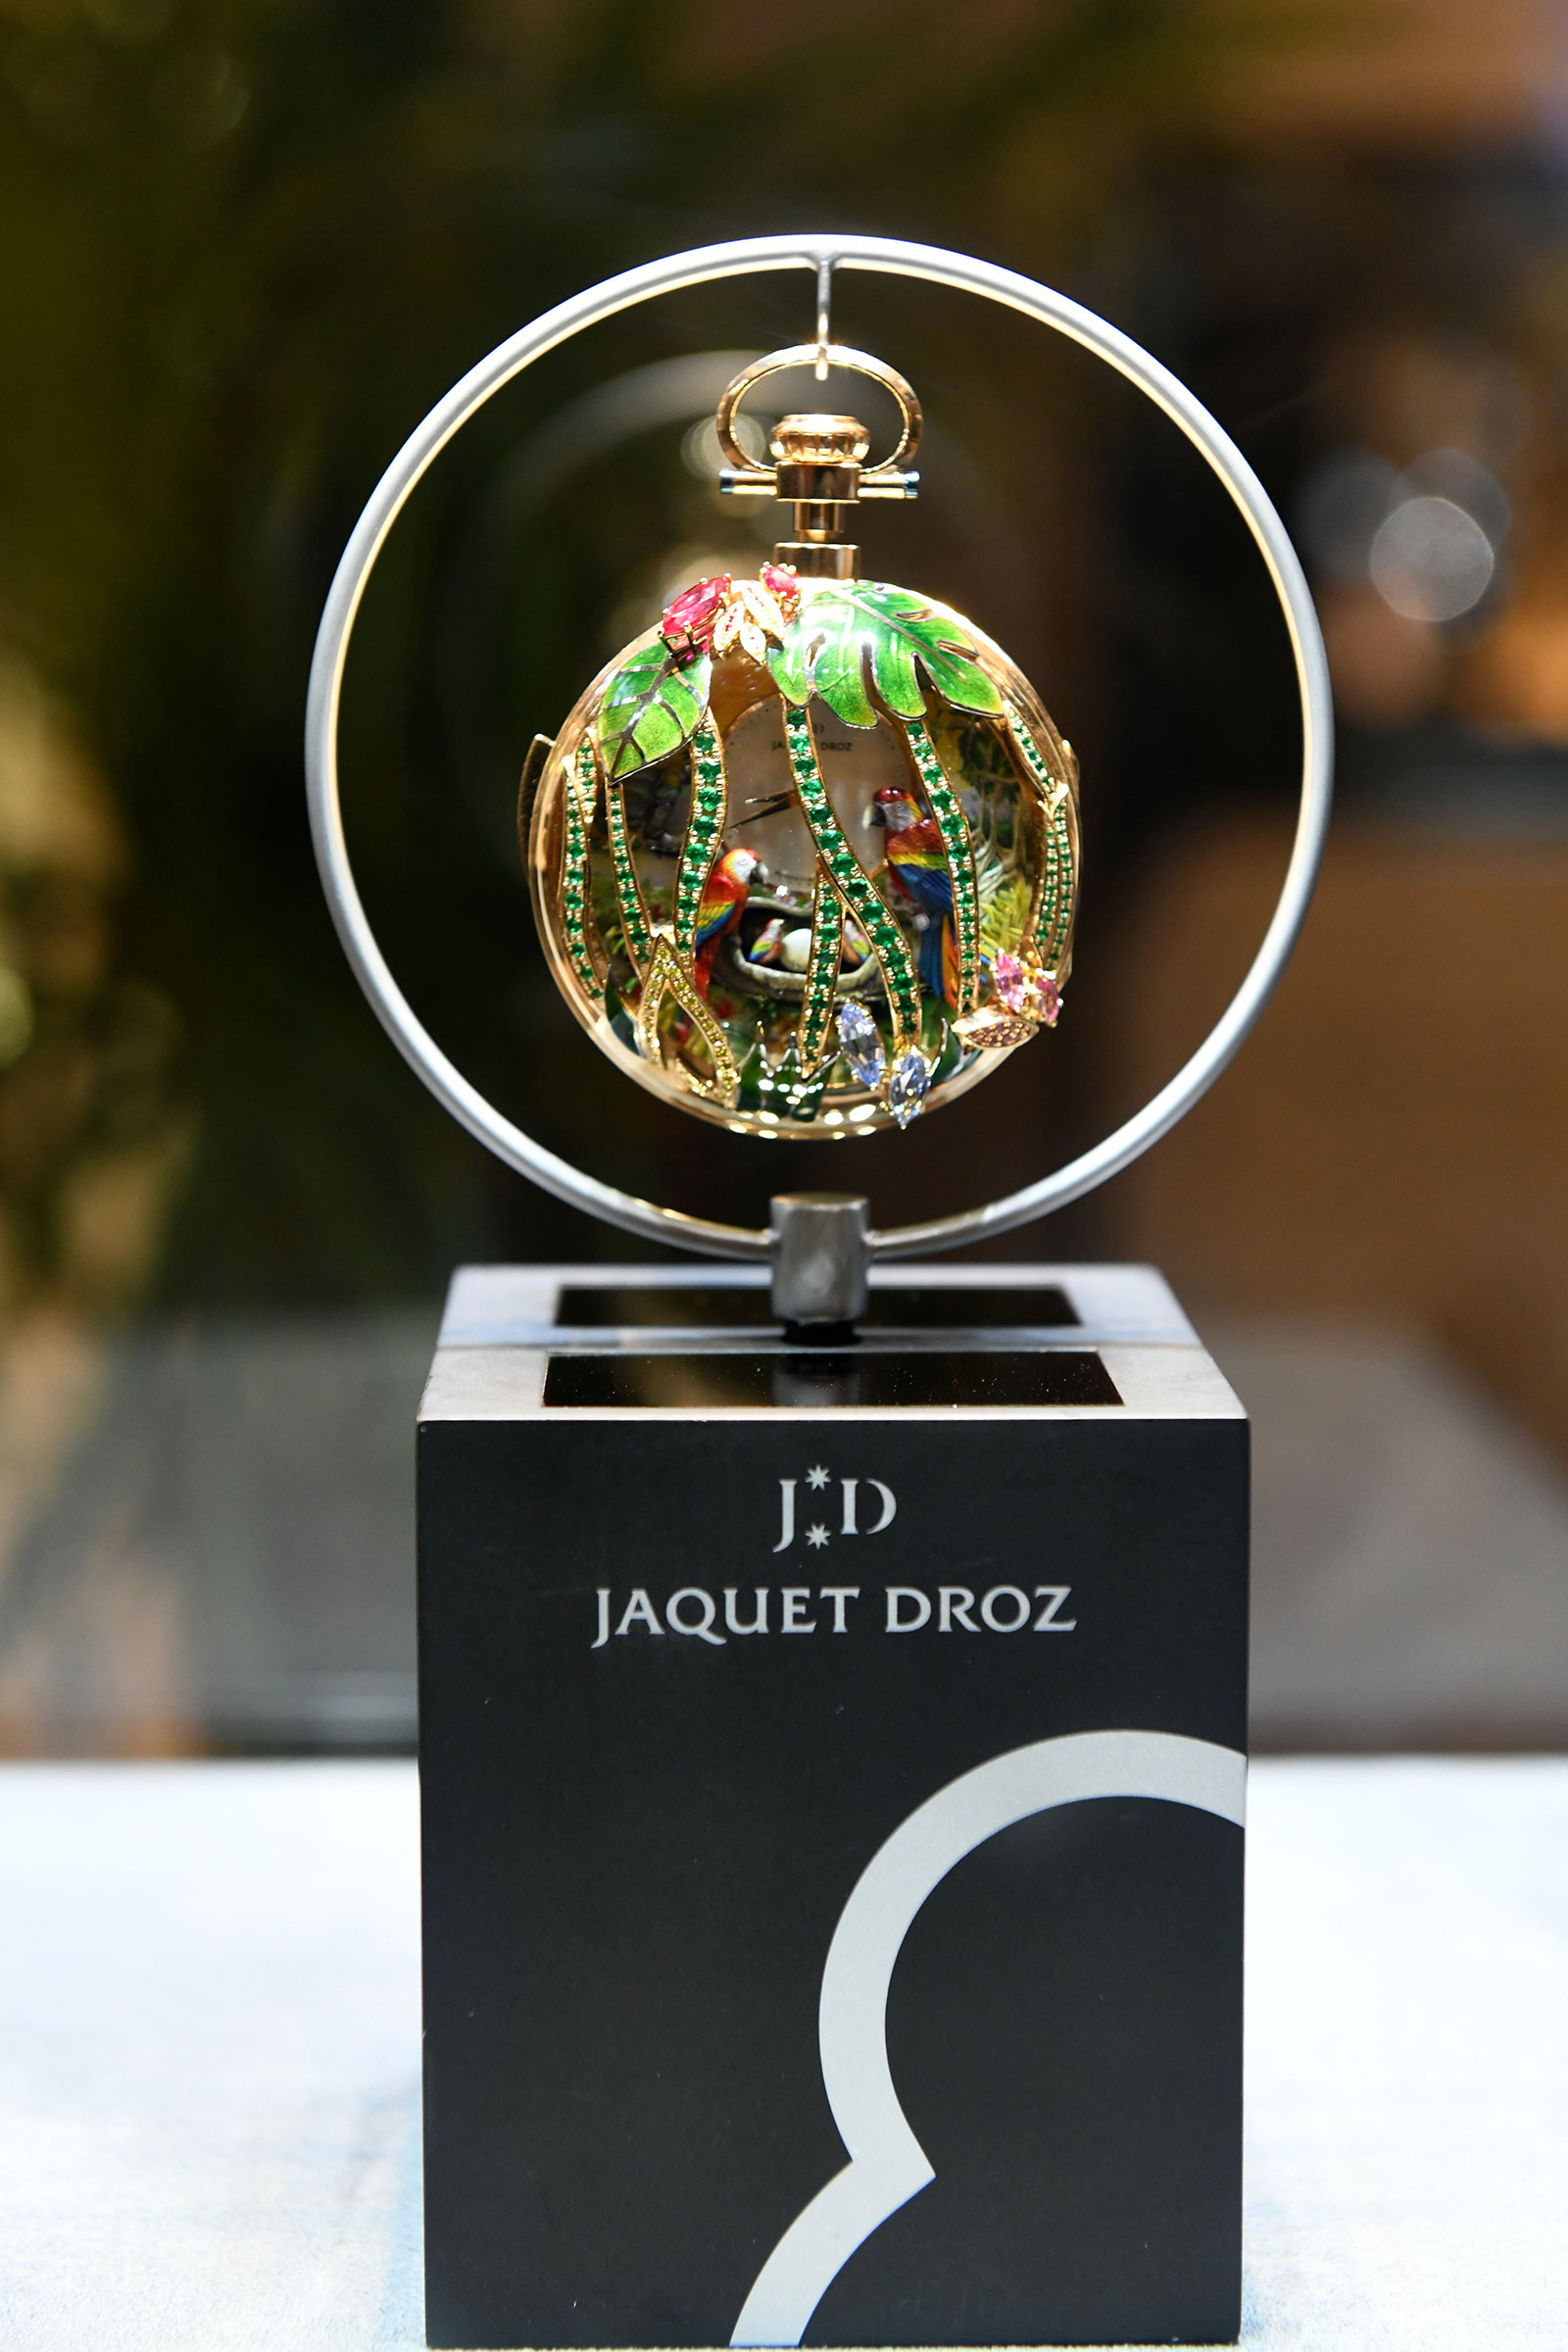 Jaquet Droz Parrot Repeater Watch Singapore 1